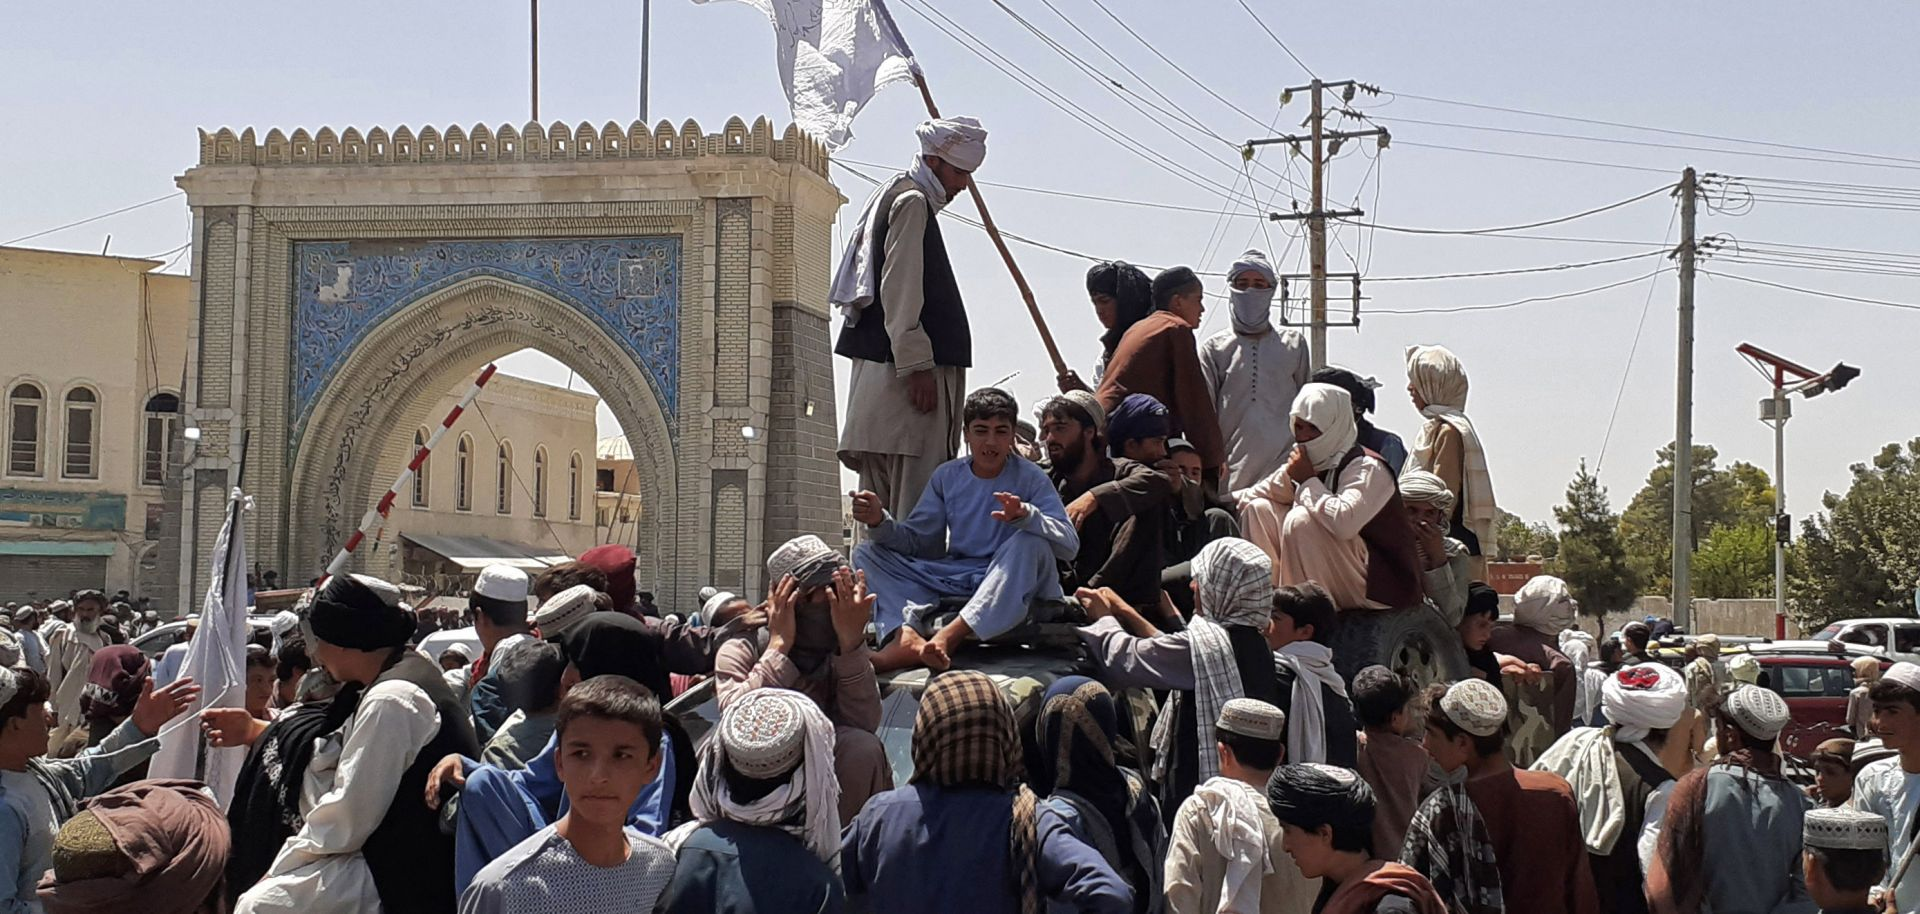 Taliban fighters stand on a vehicle in Kandahar, Afghanistan, on Aug. 13, 2021.